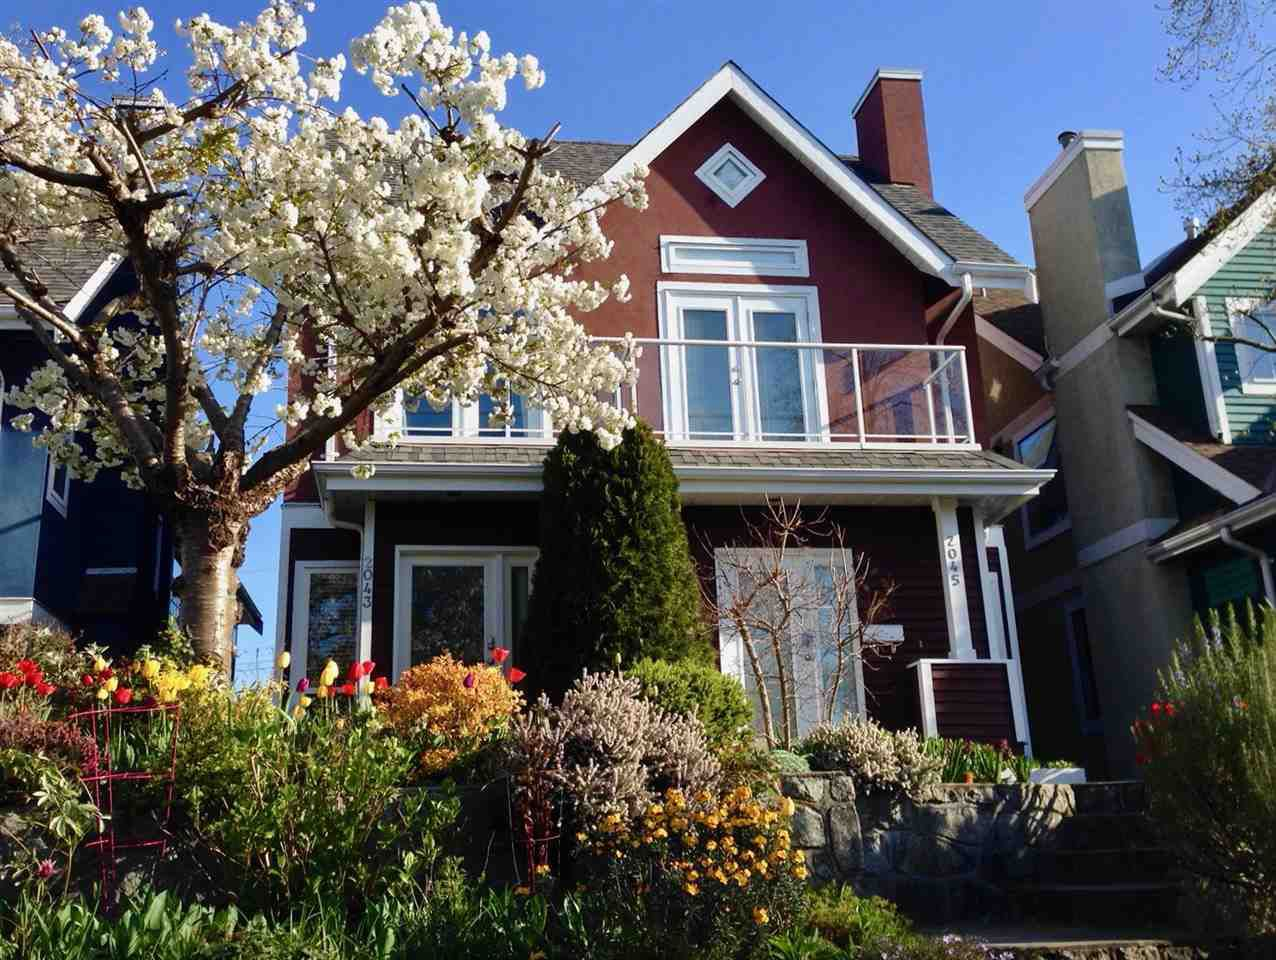 Main Photo: 2043 E 5TH AVENUE in Vancouver: Grandview VE House 1/2 Duplex for sale (Vancouver East)  : MLS®# R2304566